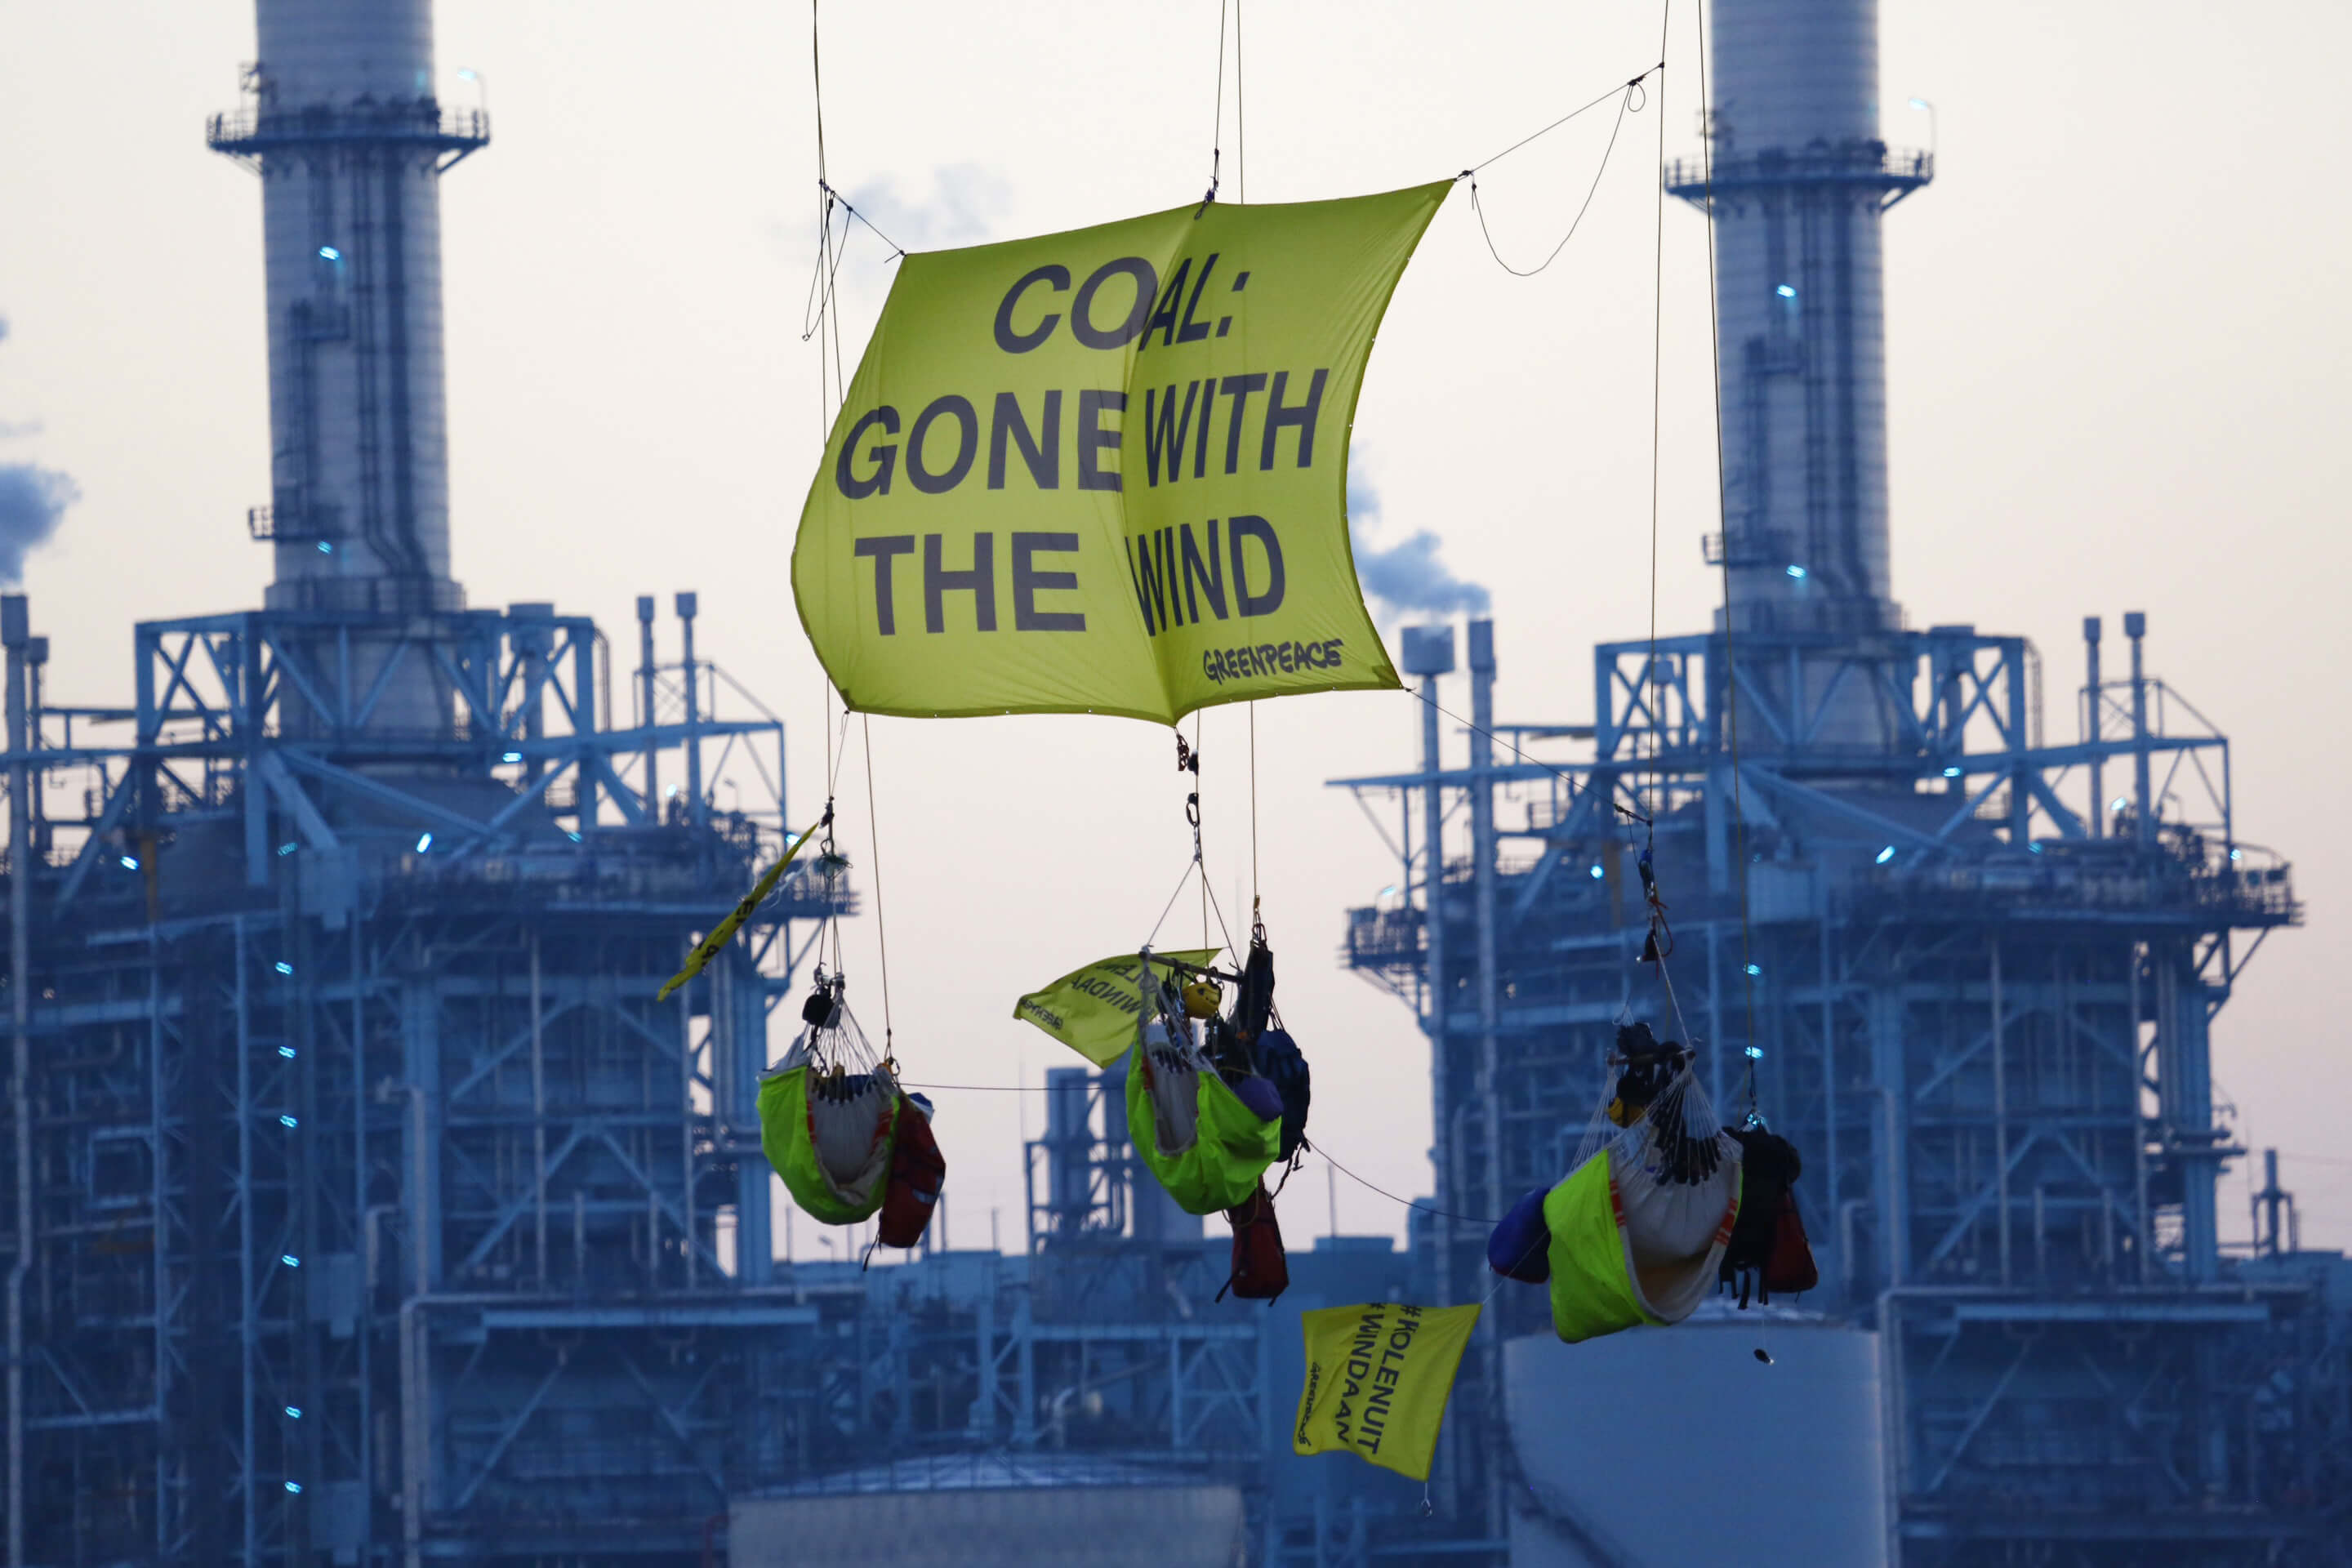 Blockade of the Essent coal-fired power plant in 2016 by Greenpeace. © Greenpeace Nederland / Flickr